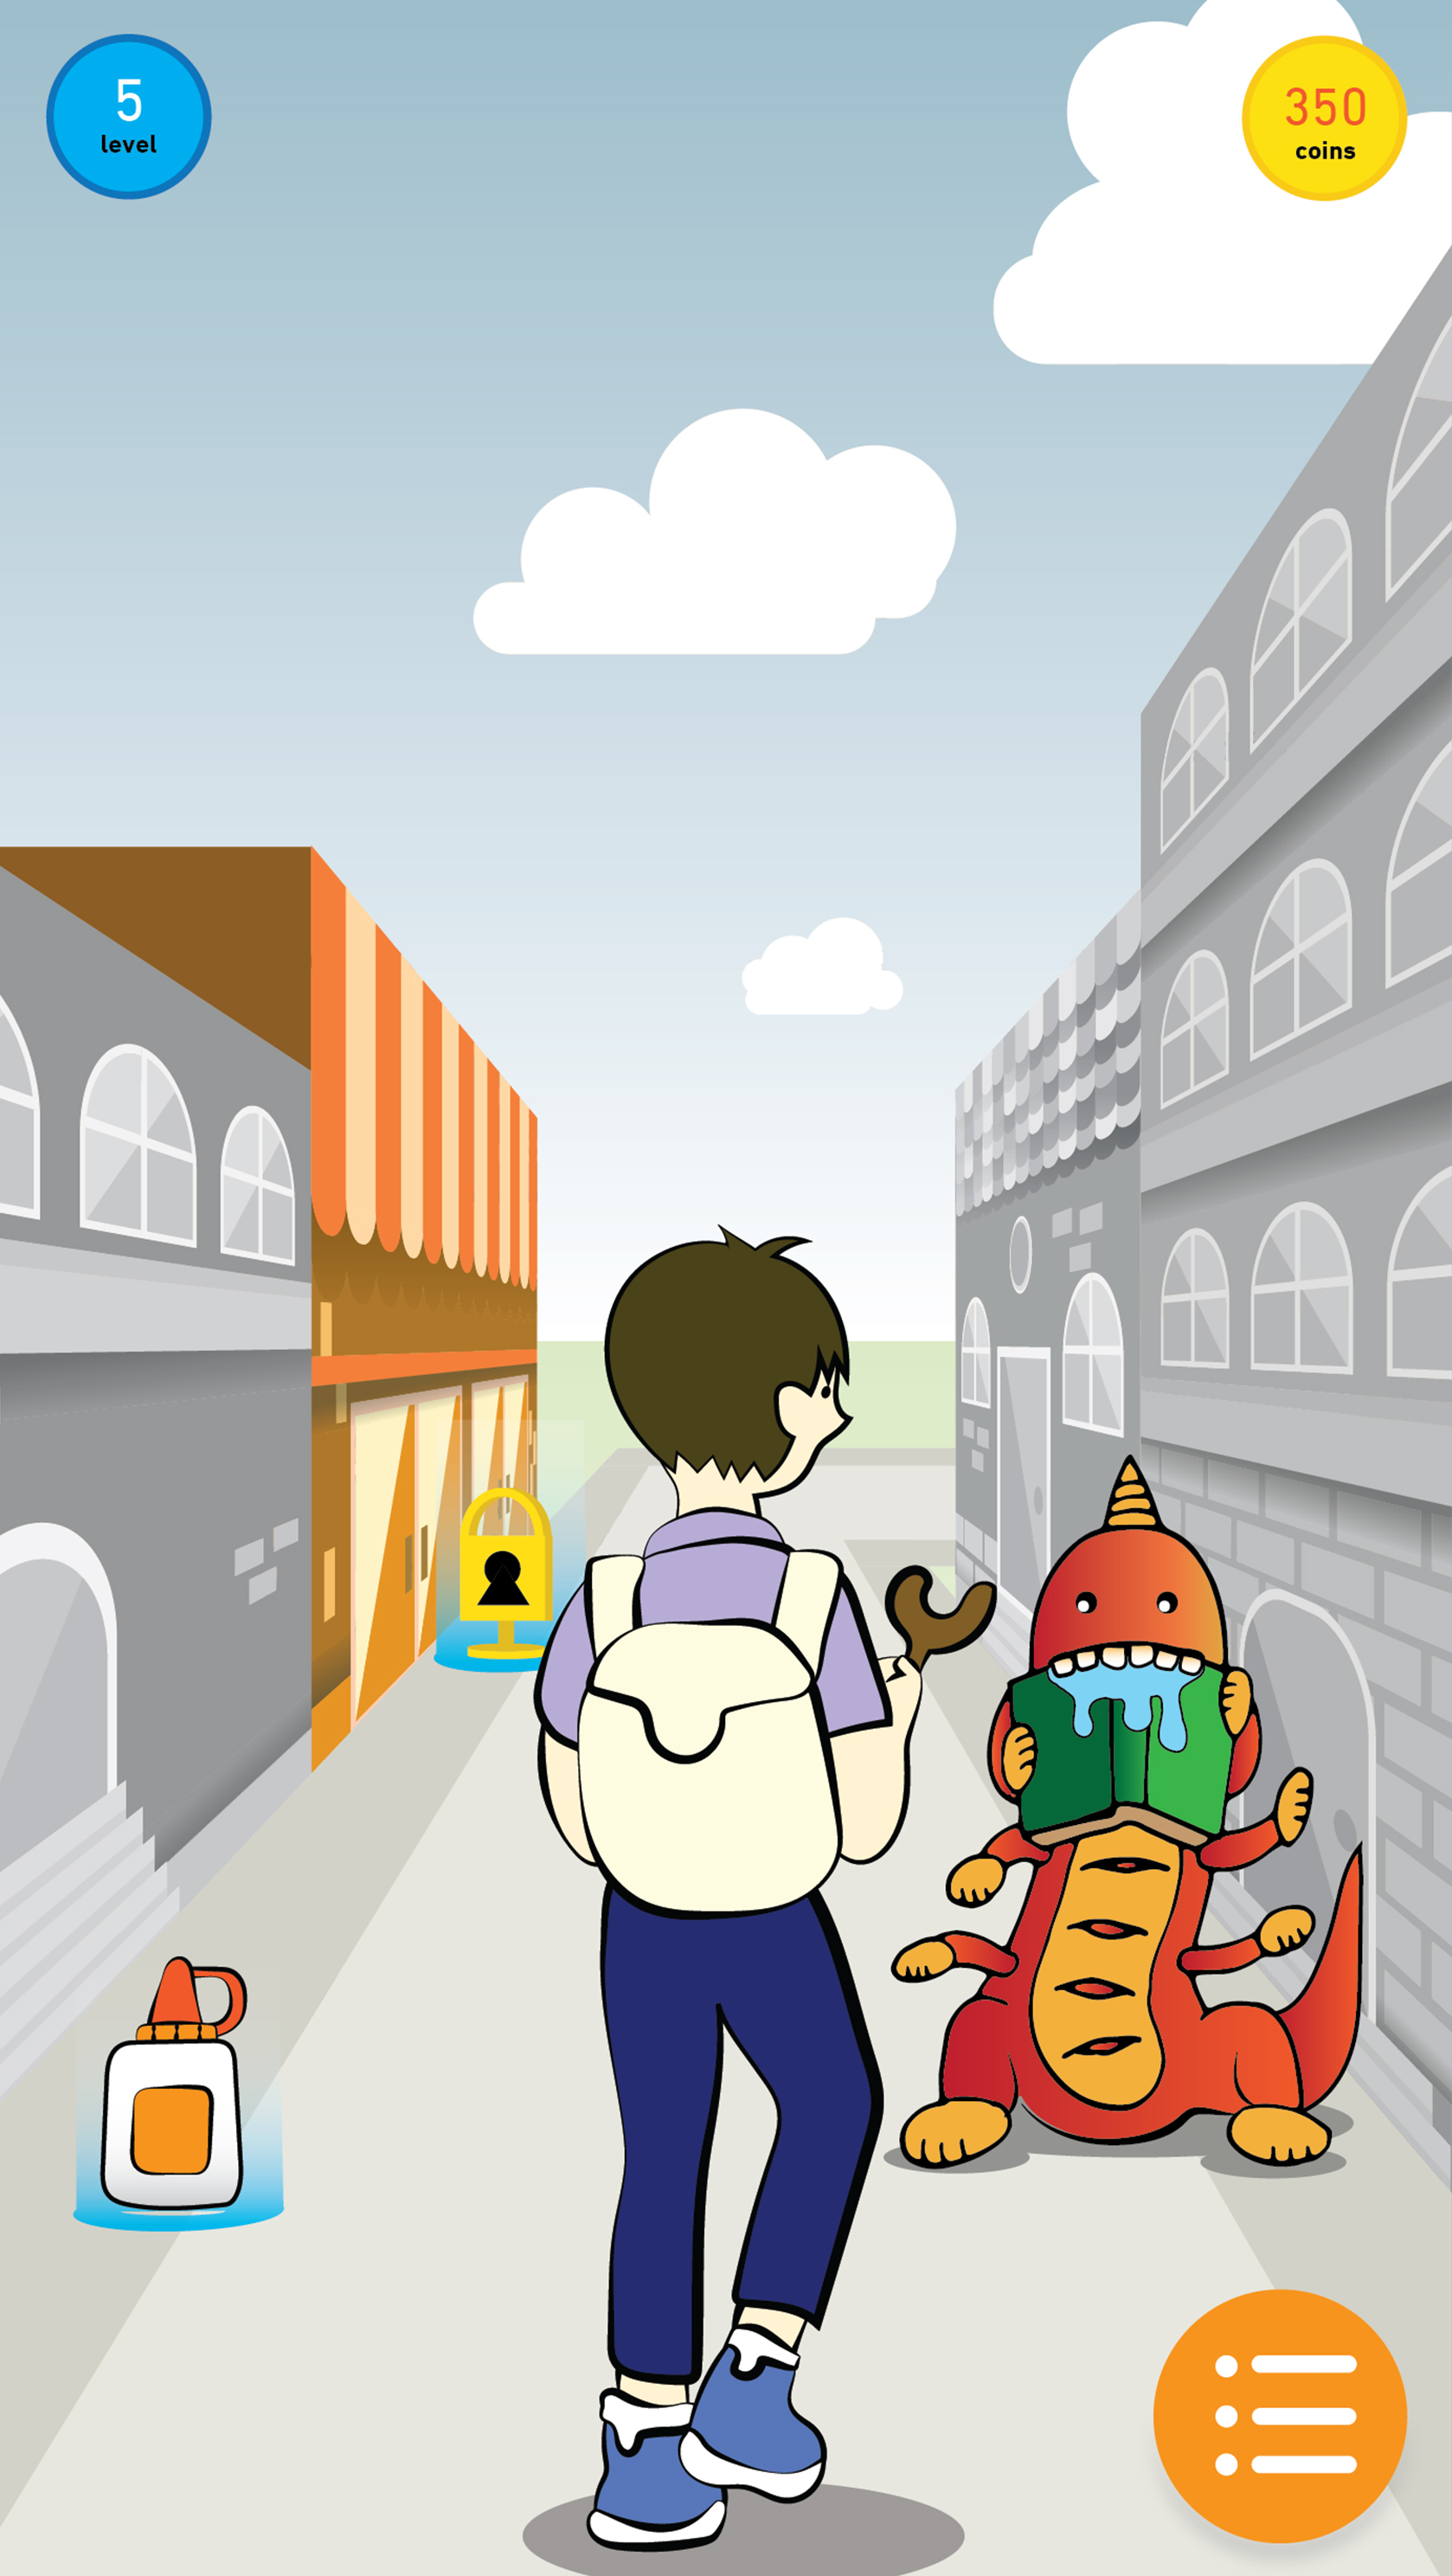 AR World Exploration - Good Aim is an augmented reality game where players explore their community collecting items to defeat monsters. Monsters are located all over, and represent specific charity needs—such as education or environment.